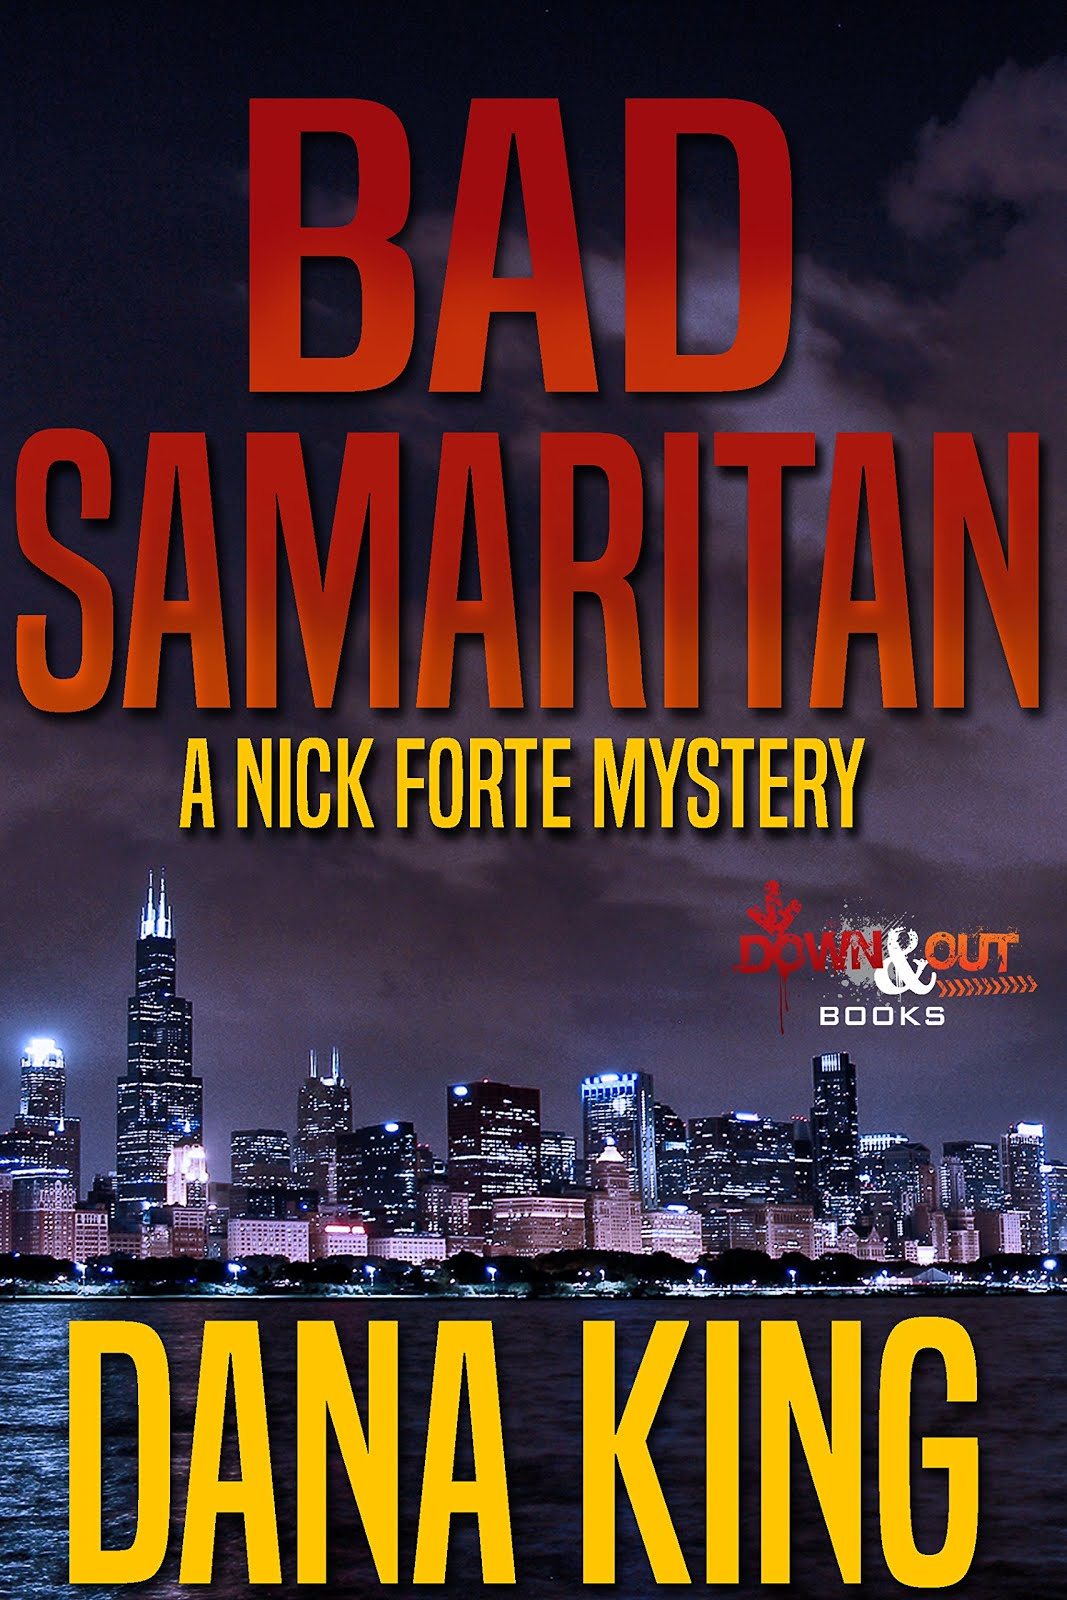 BAD SAMARITAN, Book 5 of the Nick Forte Series